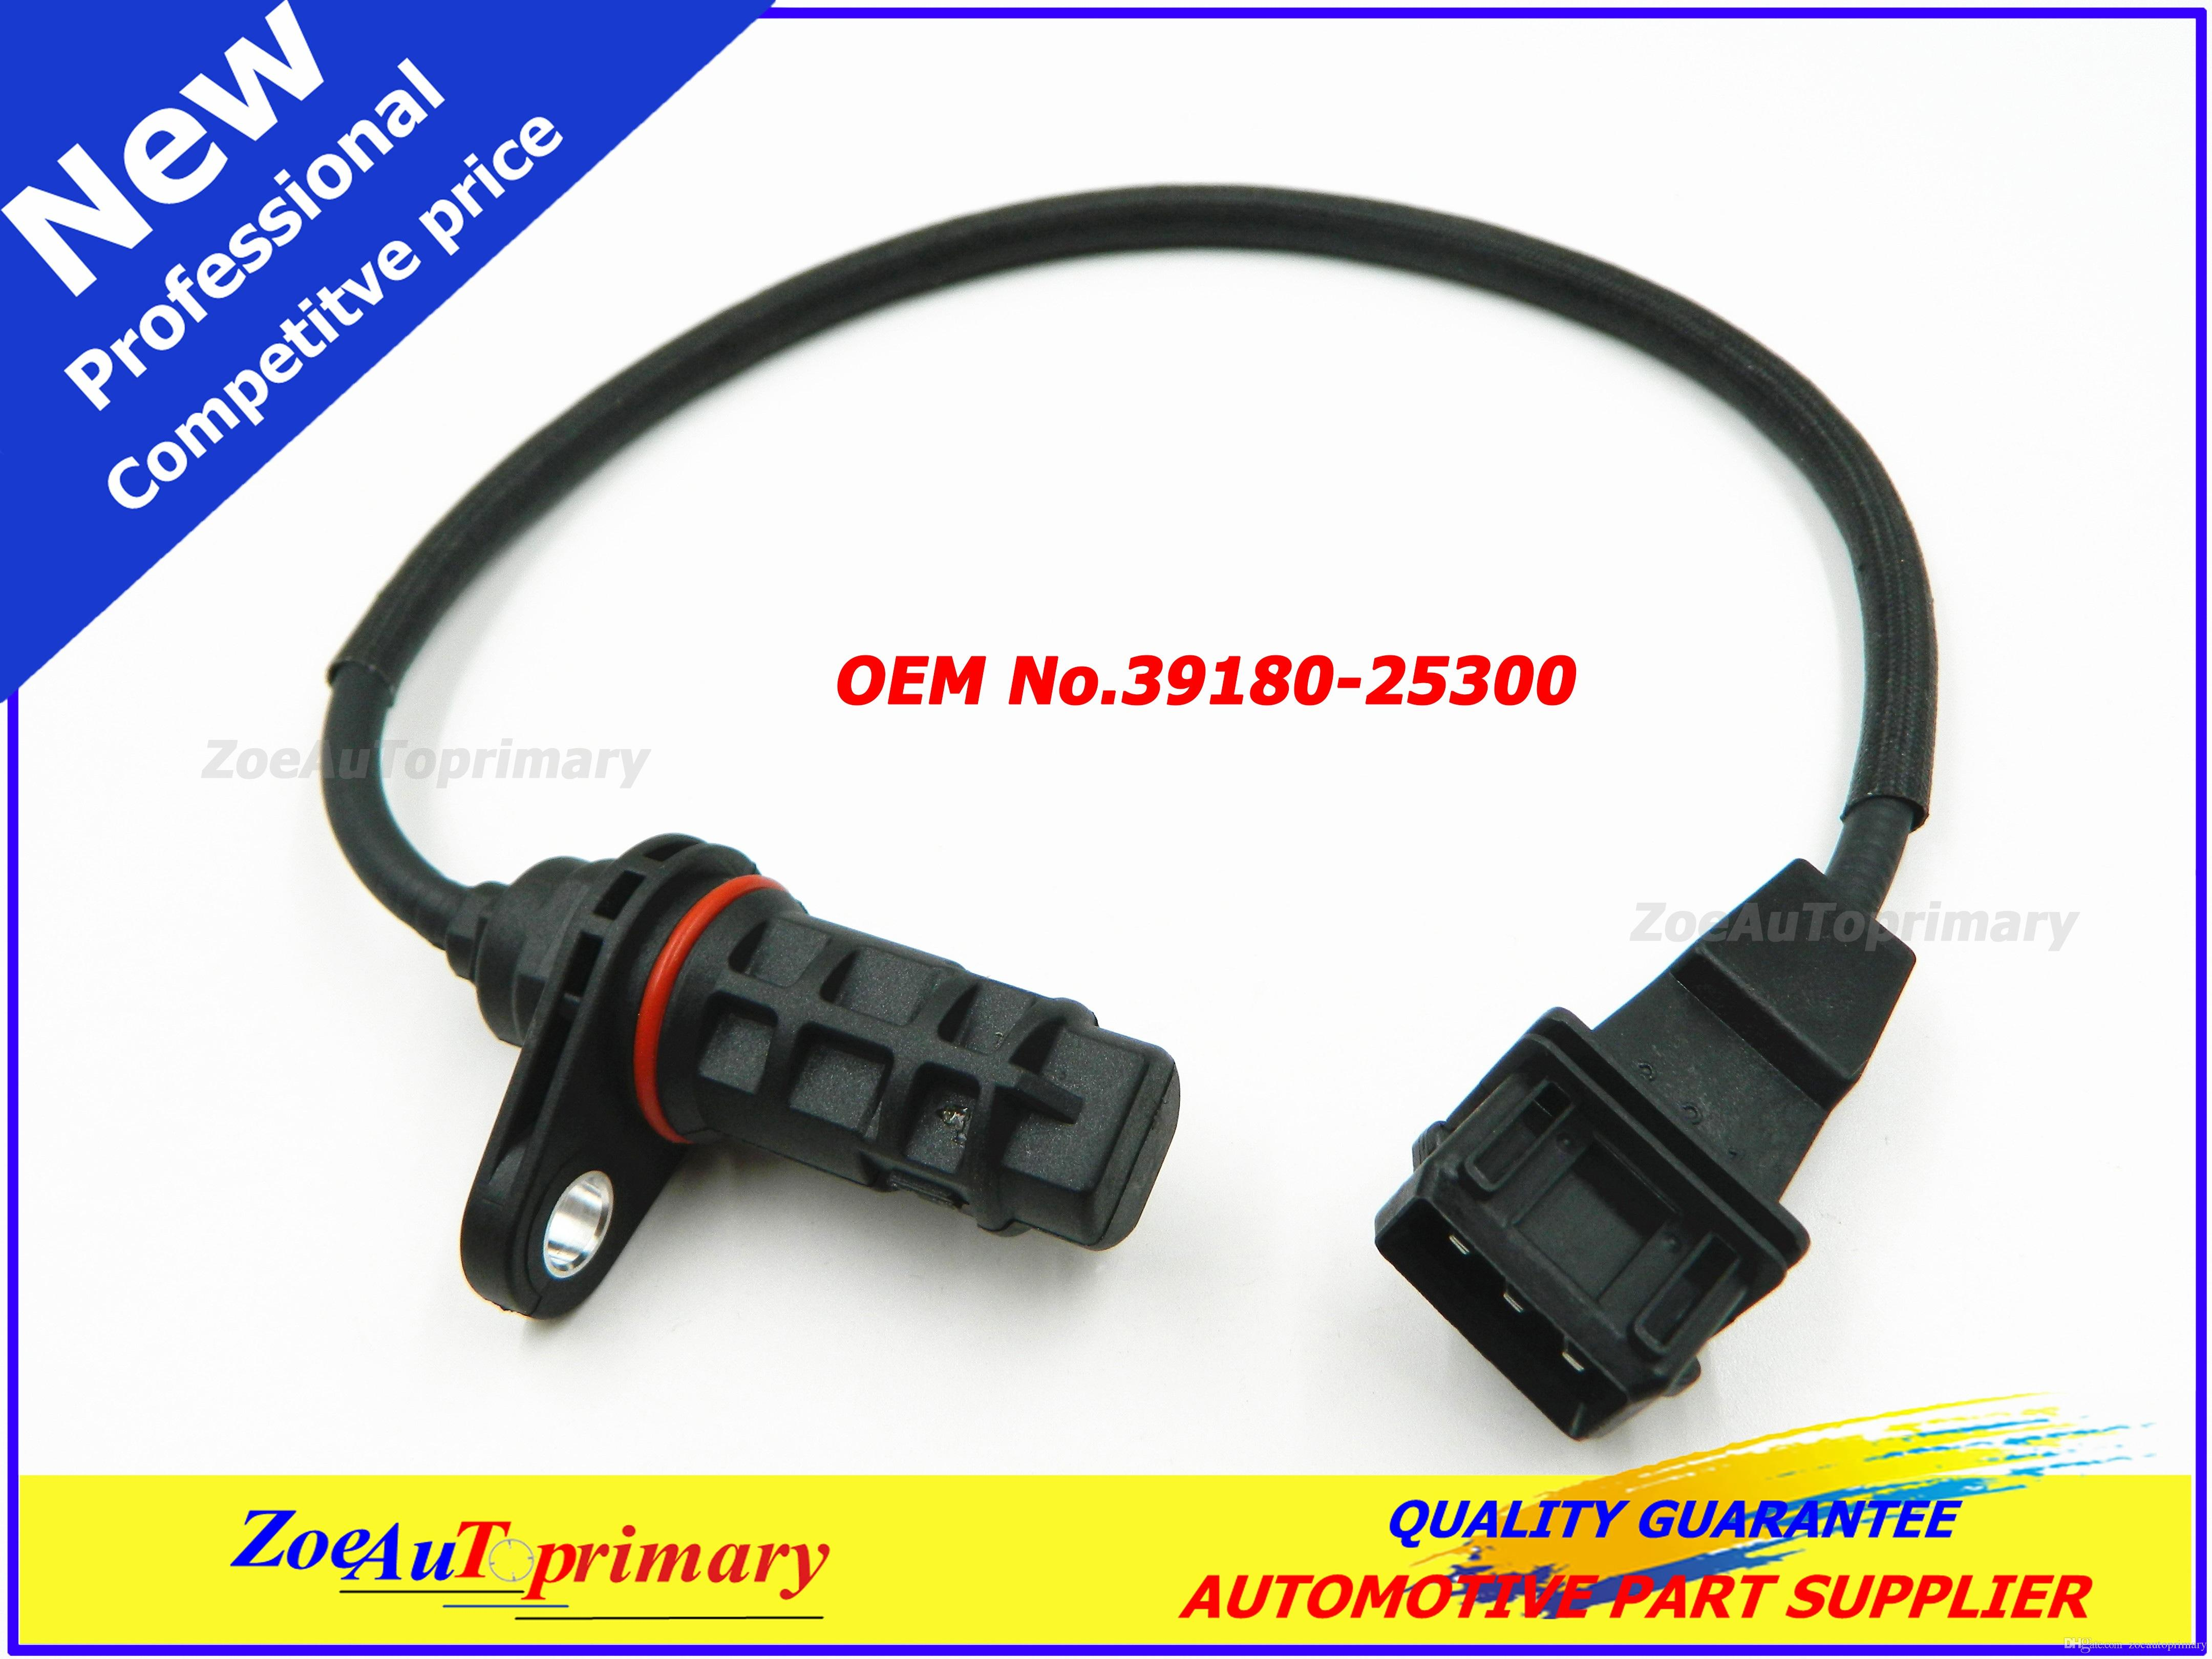 2018 CRANKSHAFT POSITION SENSOR 39180 25300 For HYUNDAI Santa Fe KIA 2.0L  2.4L 06 15 From Zoeautoprimary, $17.46 | DHgate.Com